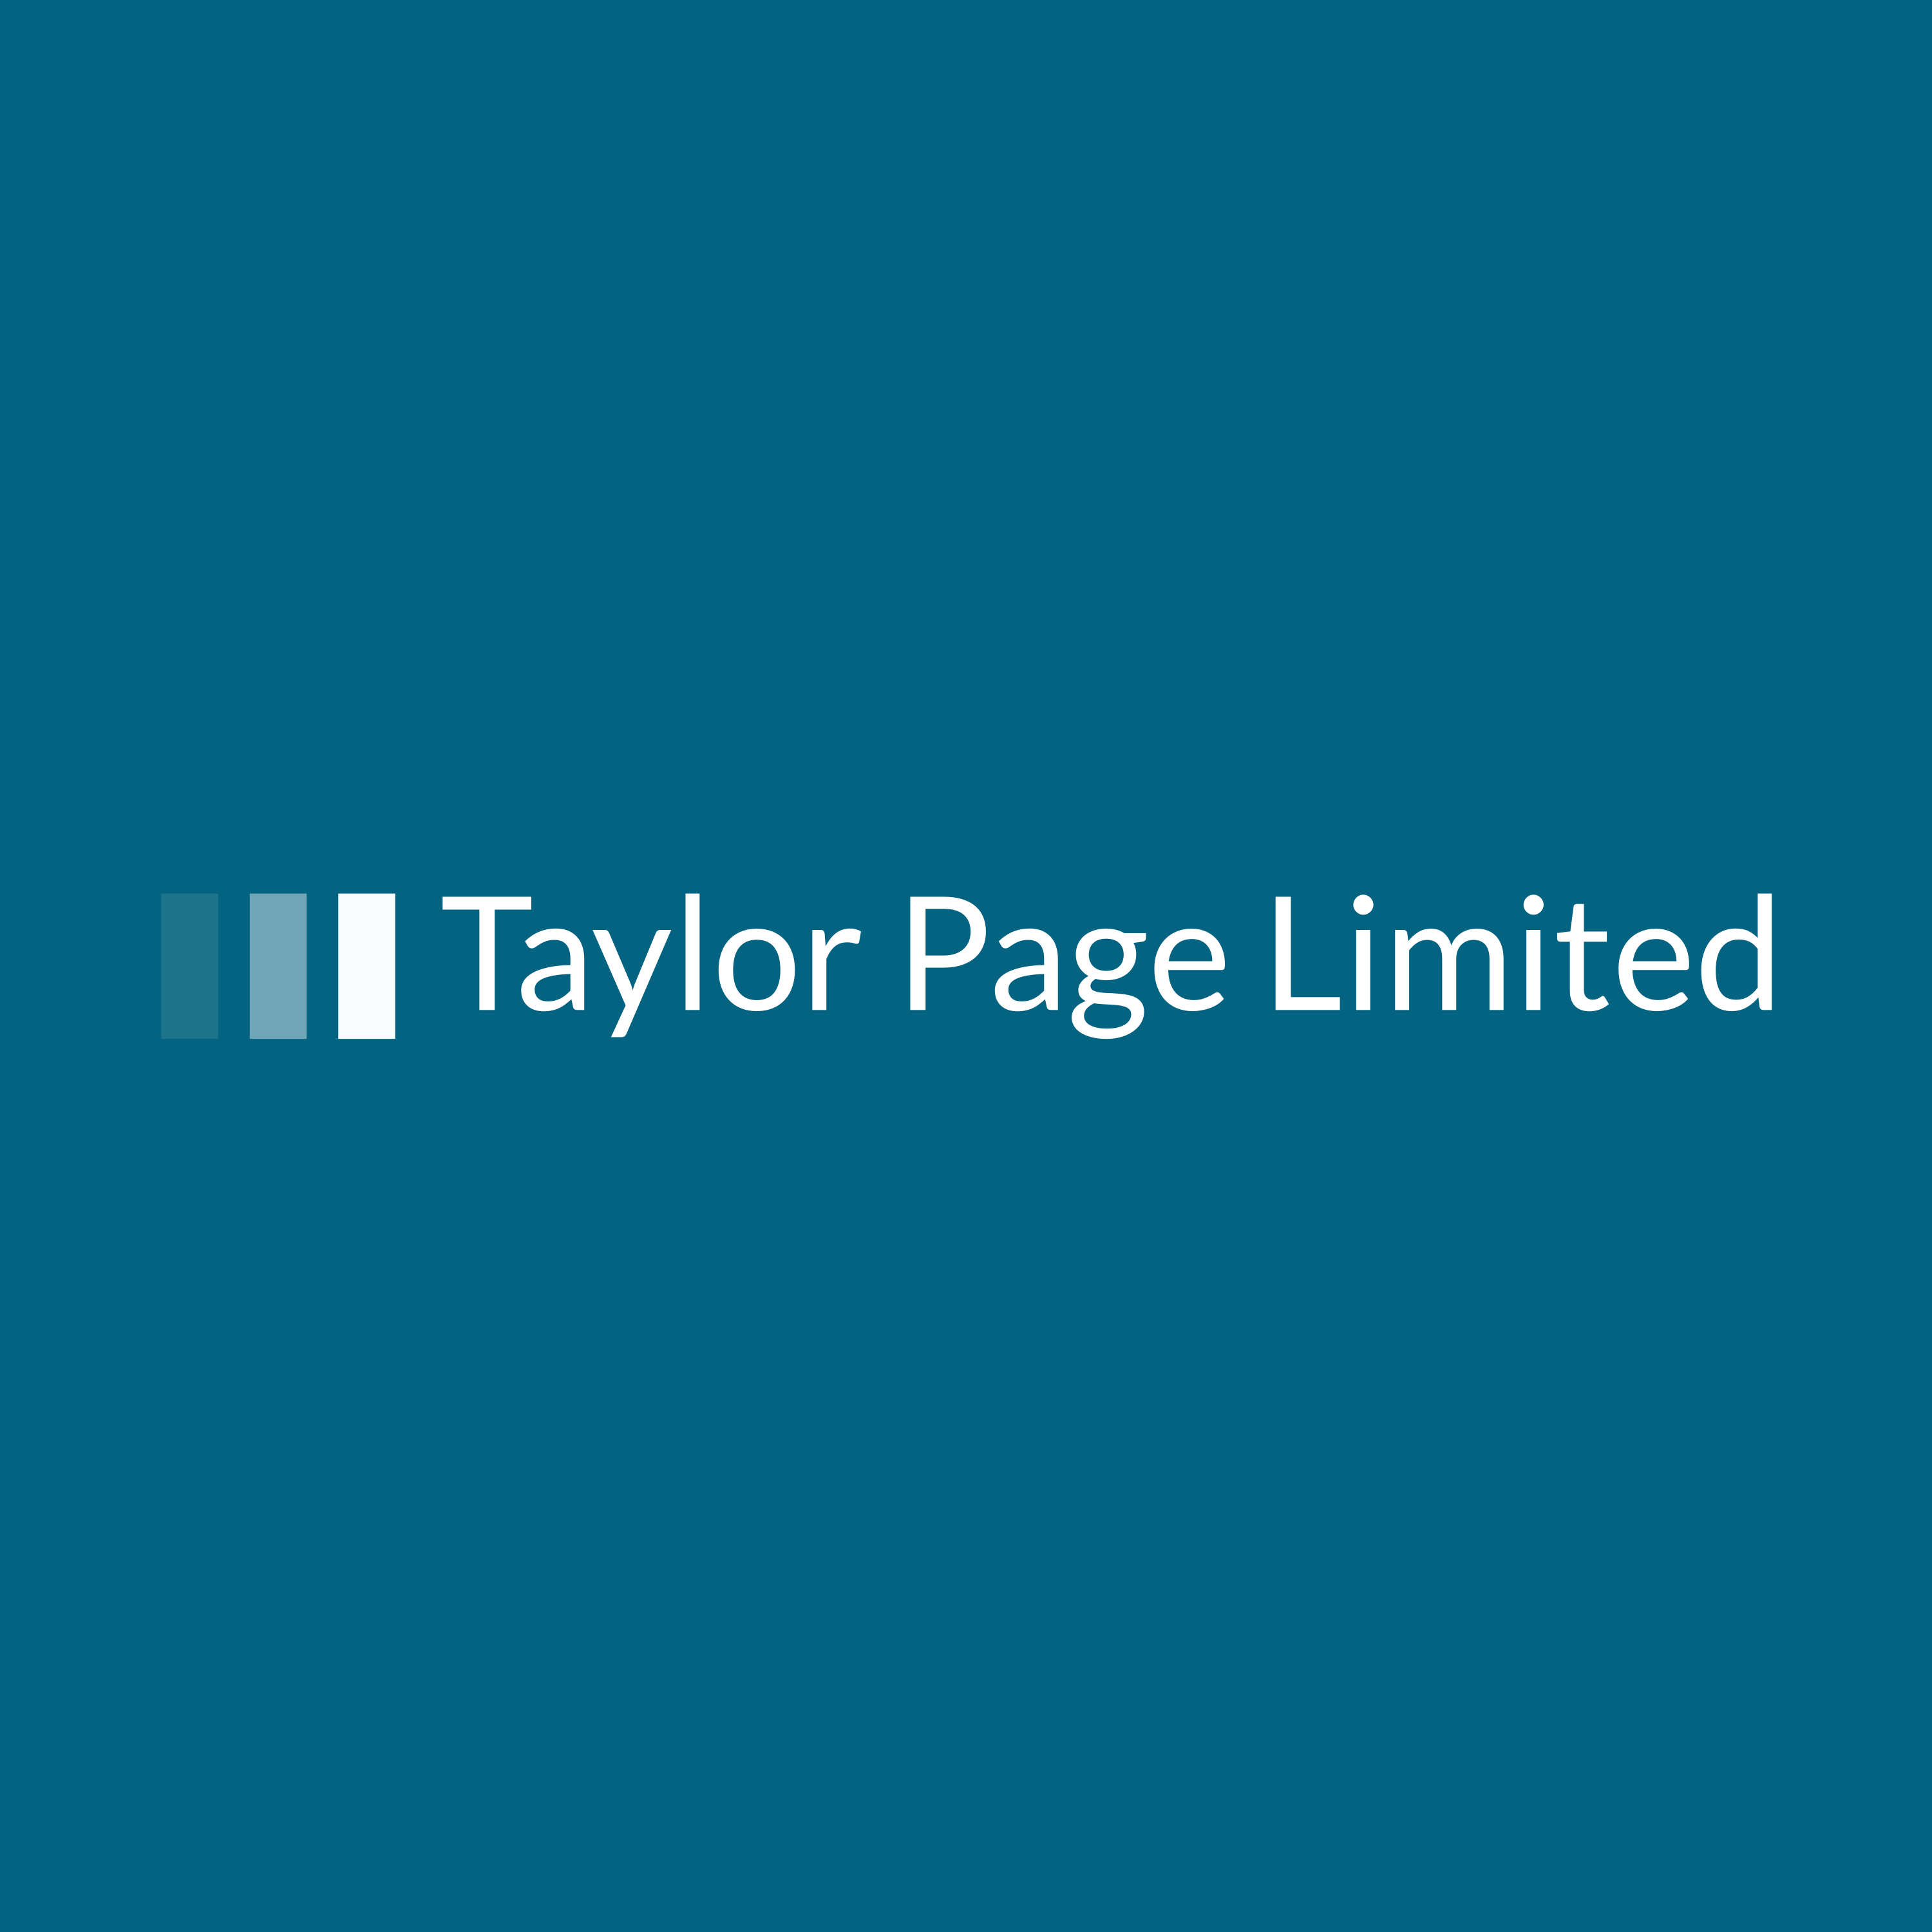 Taylor Page Limited